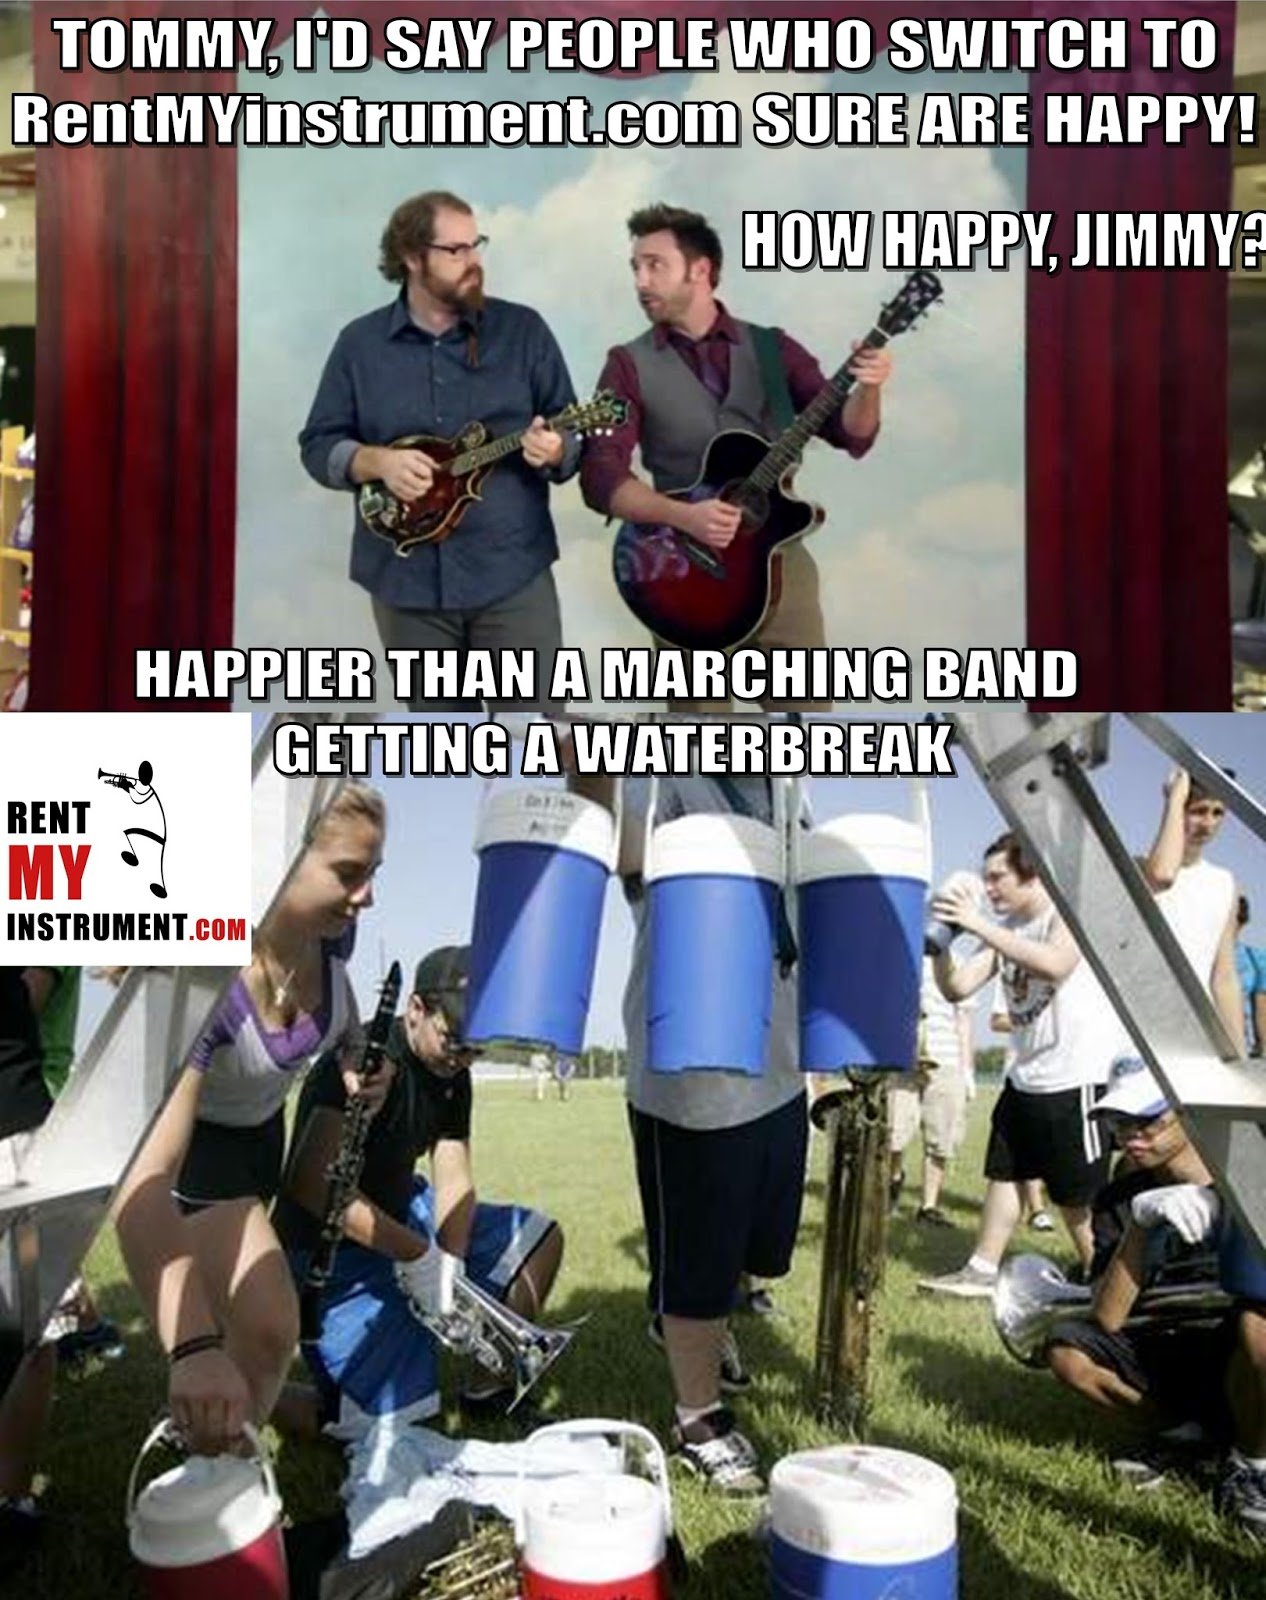 gieco+spoof+RMI+ad rentmyinstrument top 25 band geek posts best of school band memes